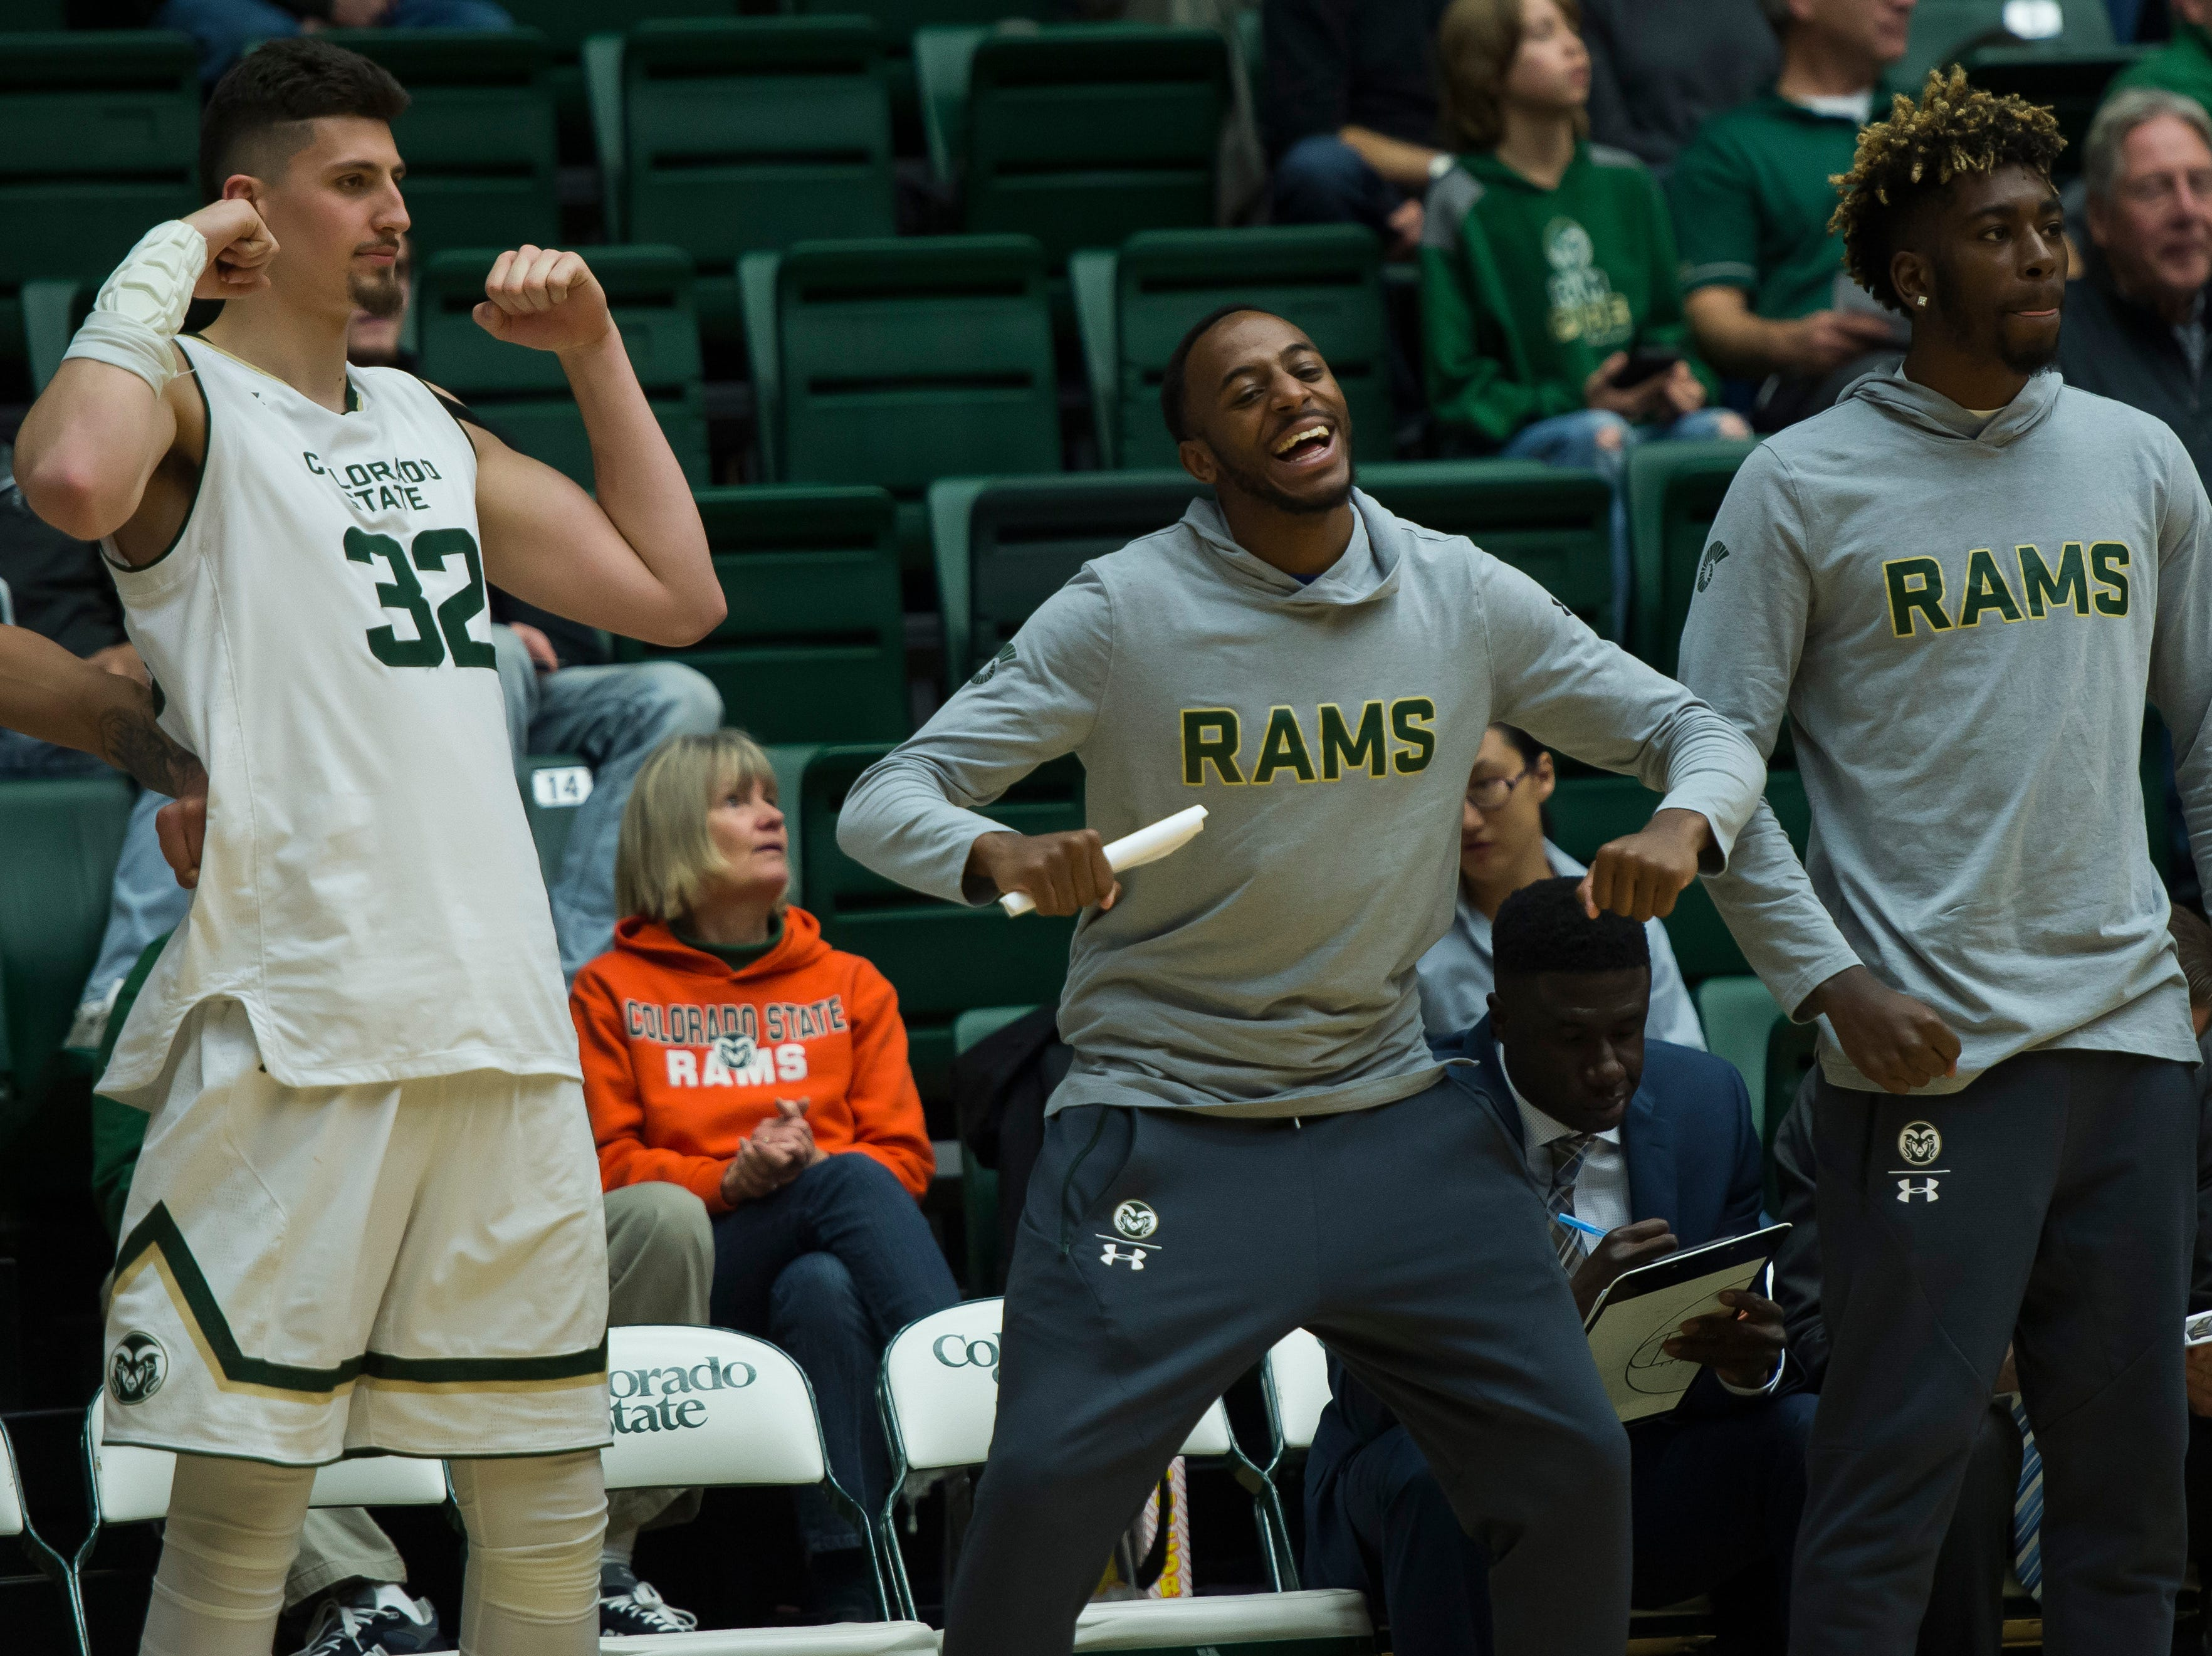 Colorado State University seniors Nico Carvacho (32), J.D. Paige (22) and junior Kris Martin (30) react from the bench during a game against Colorado Christian University on Wednesday, Nov. 7, 2018, at Moby Arena in Fort Collins, Colo.